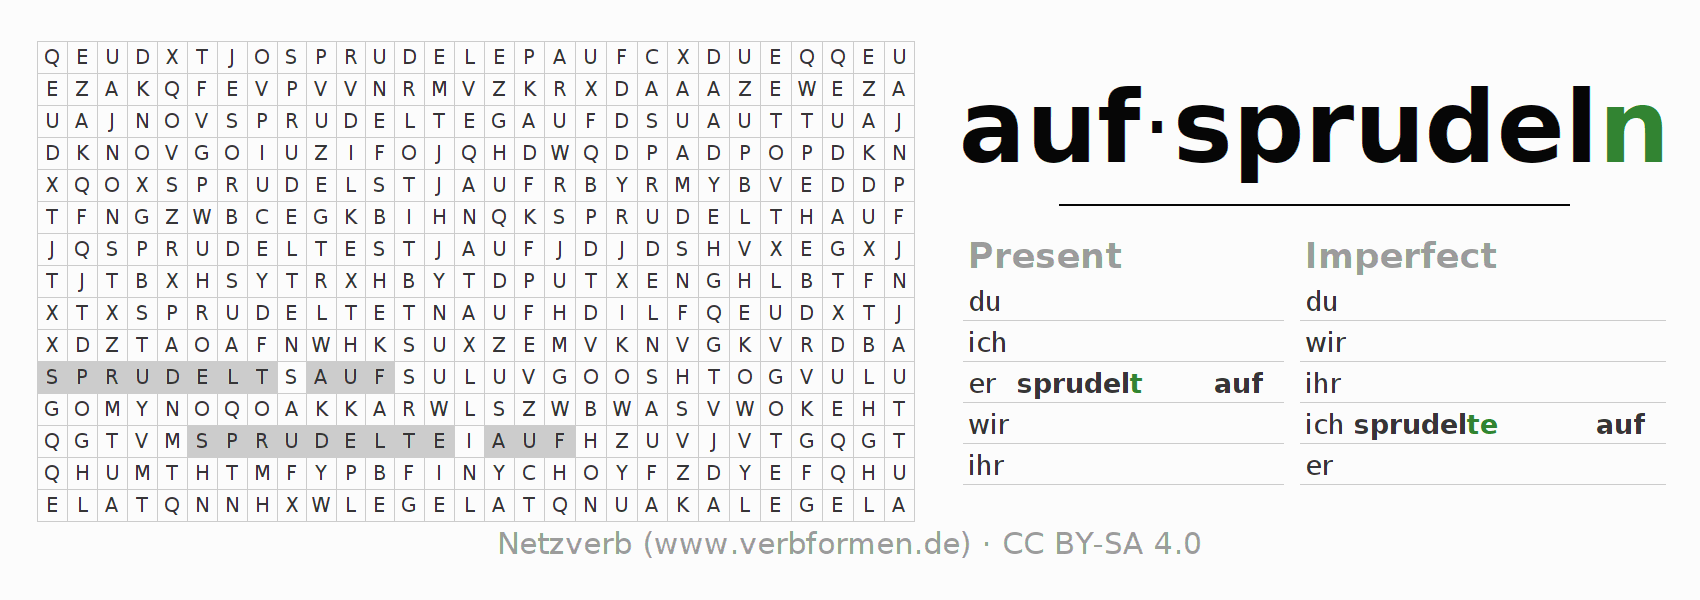 Word search puzzle for the conjugation of the verb aufsprudeln